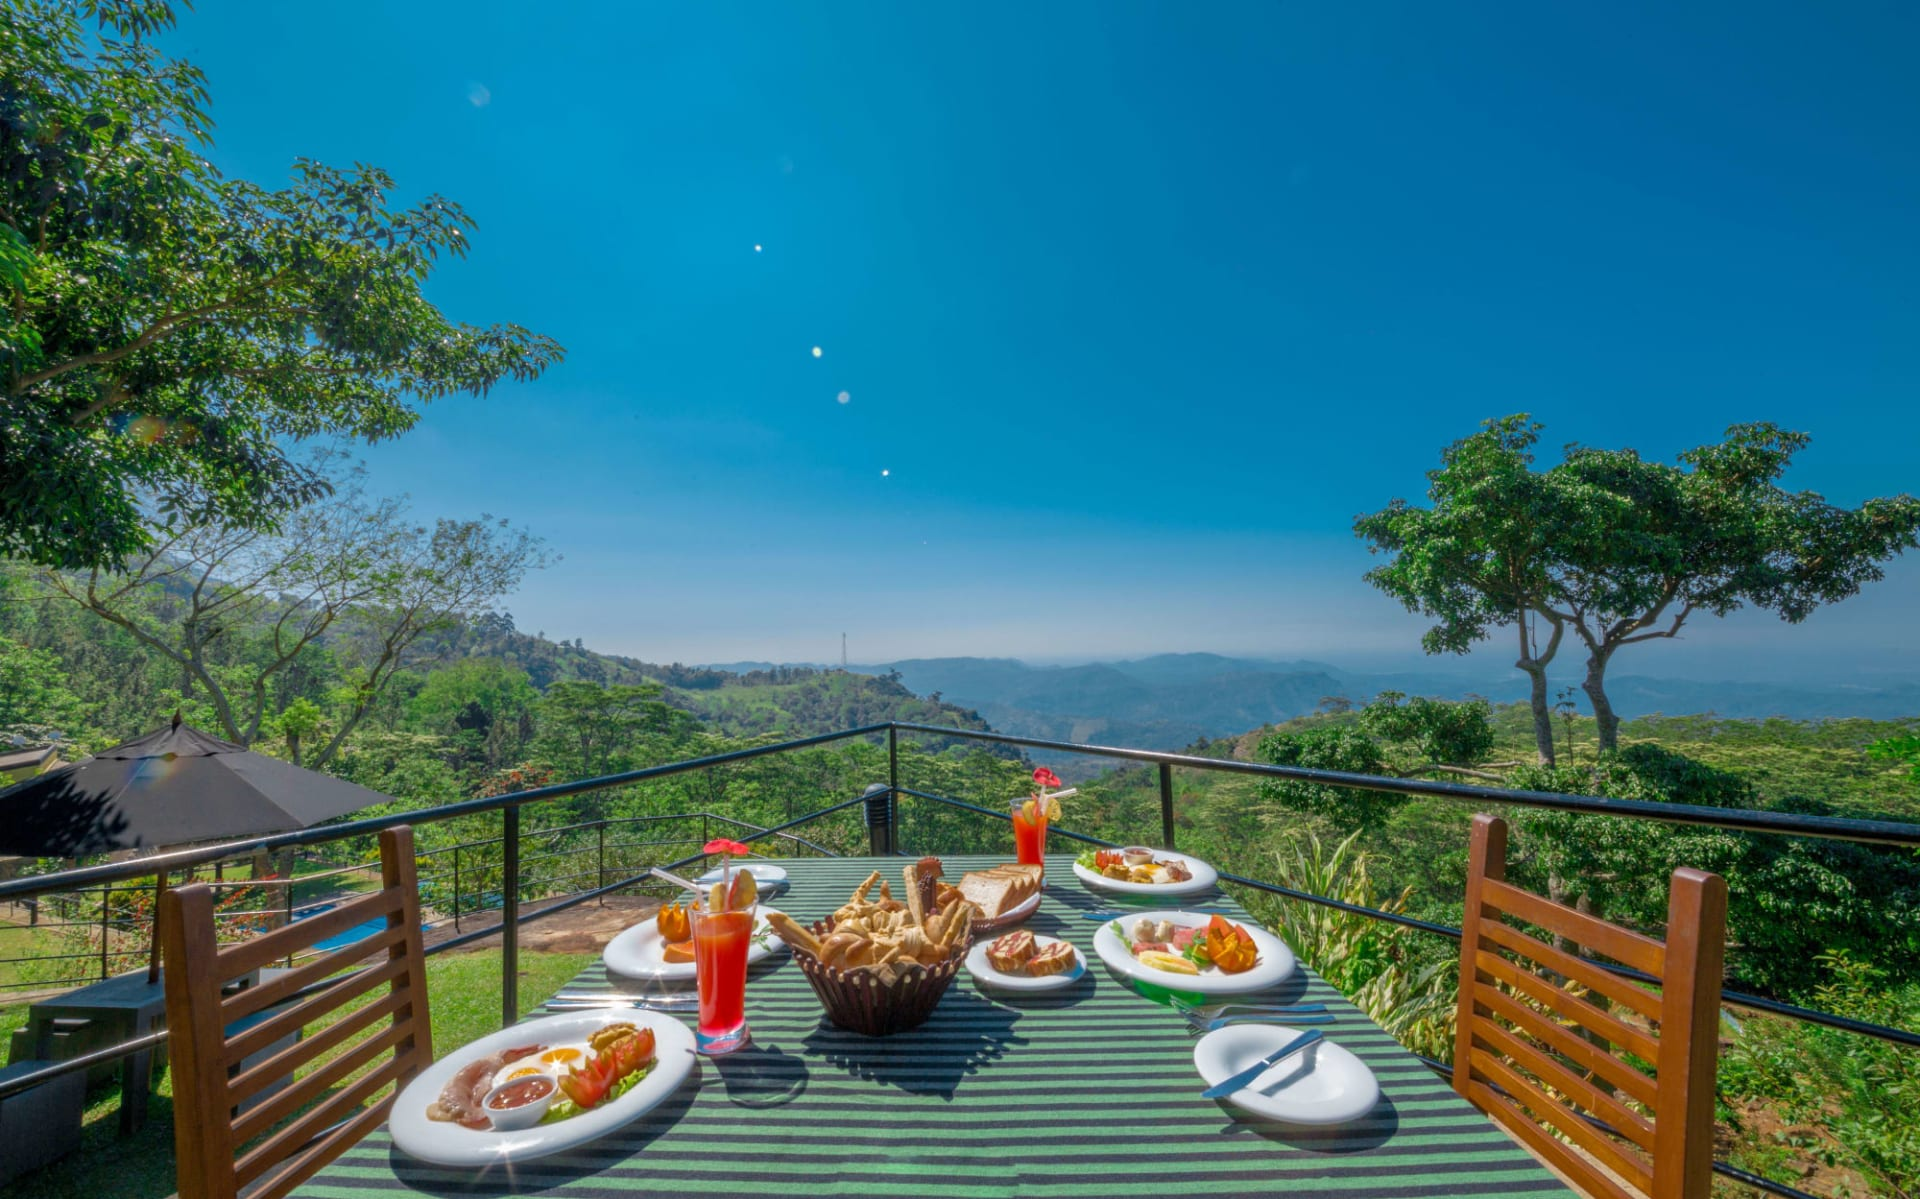 Melheim Resort in Ella, Haputale, Koslanda: Breakfast with a View